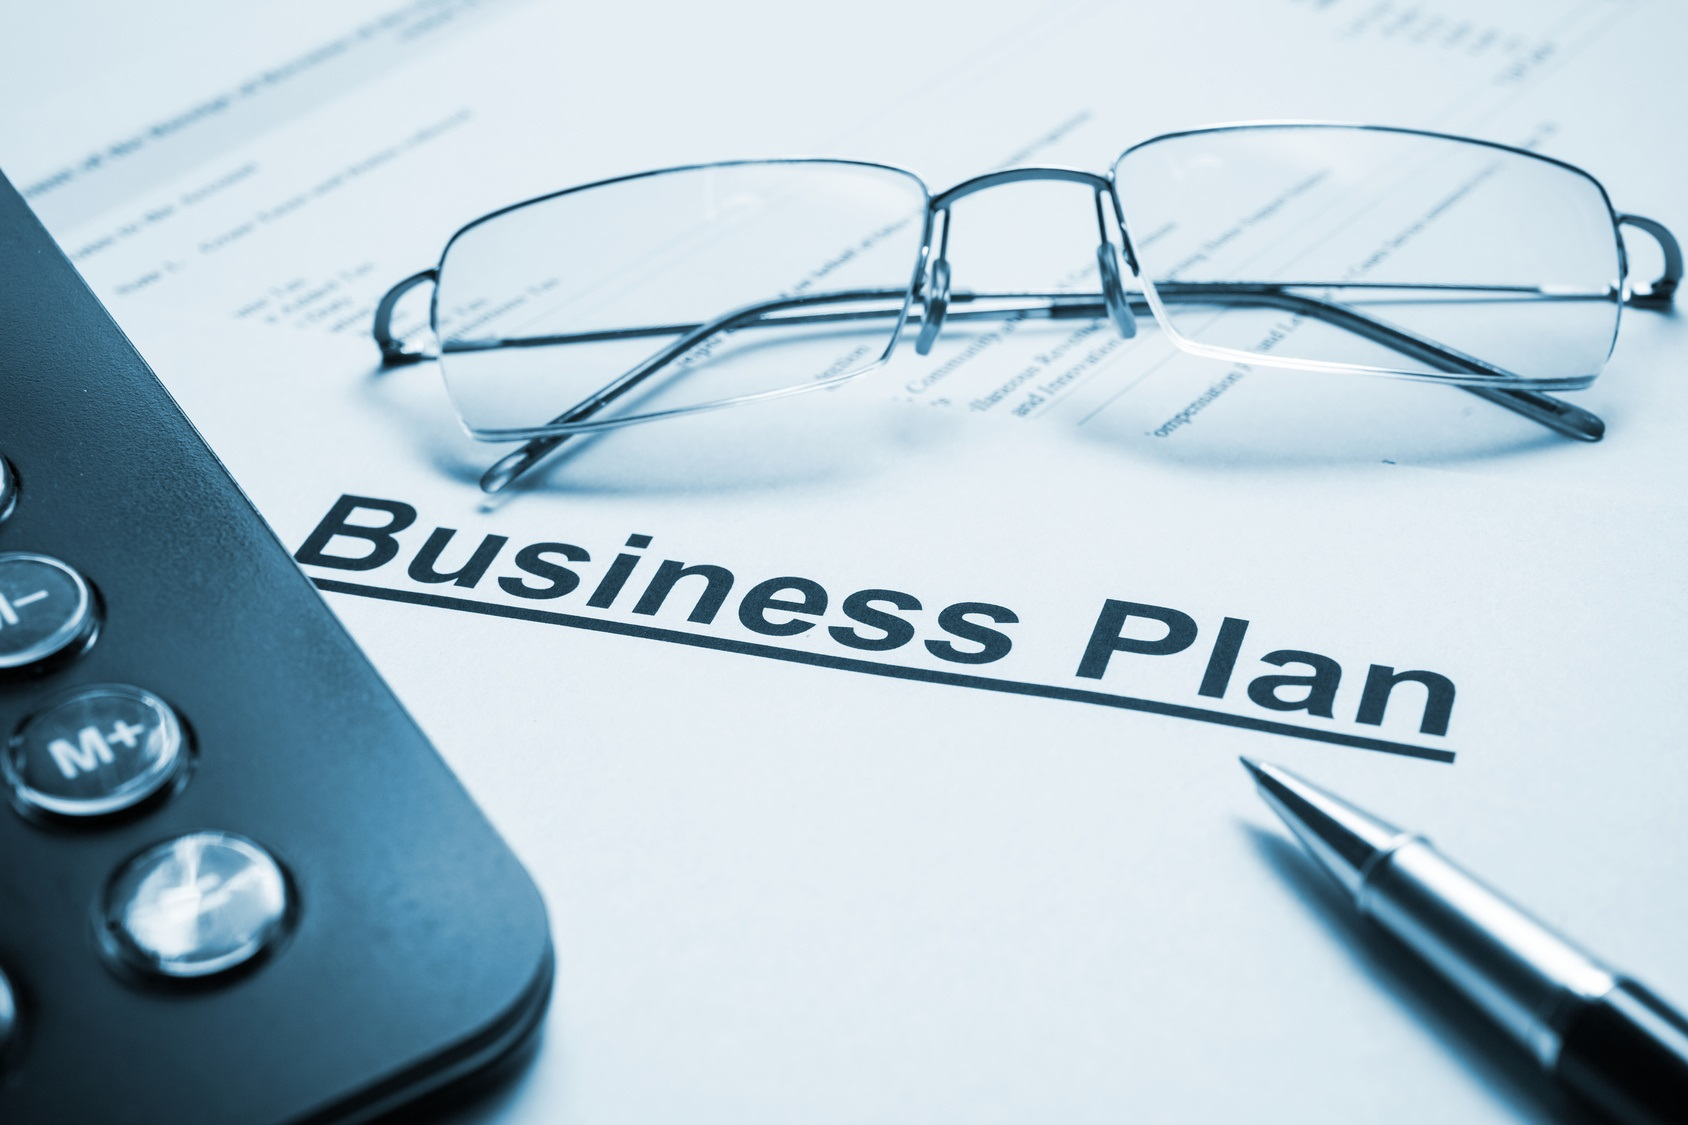 Three business plans